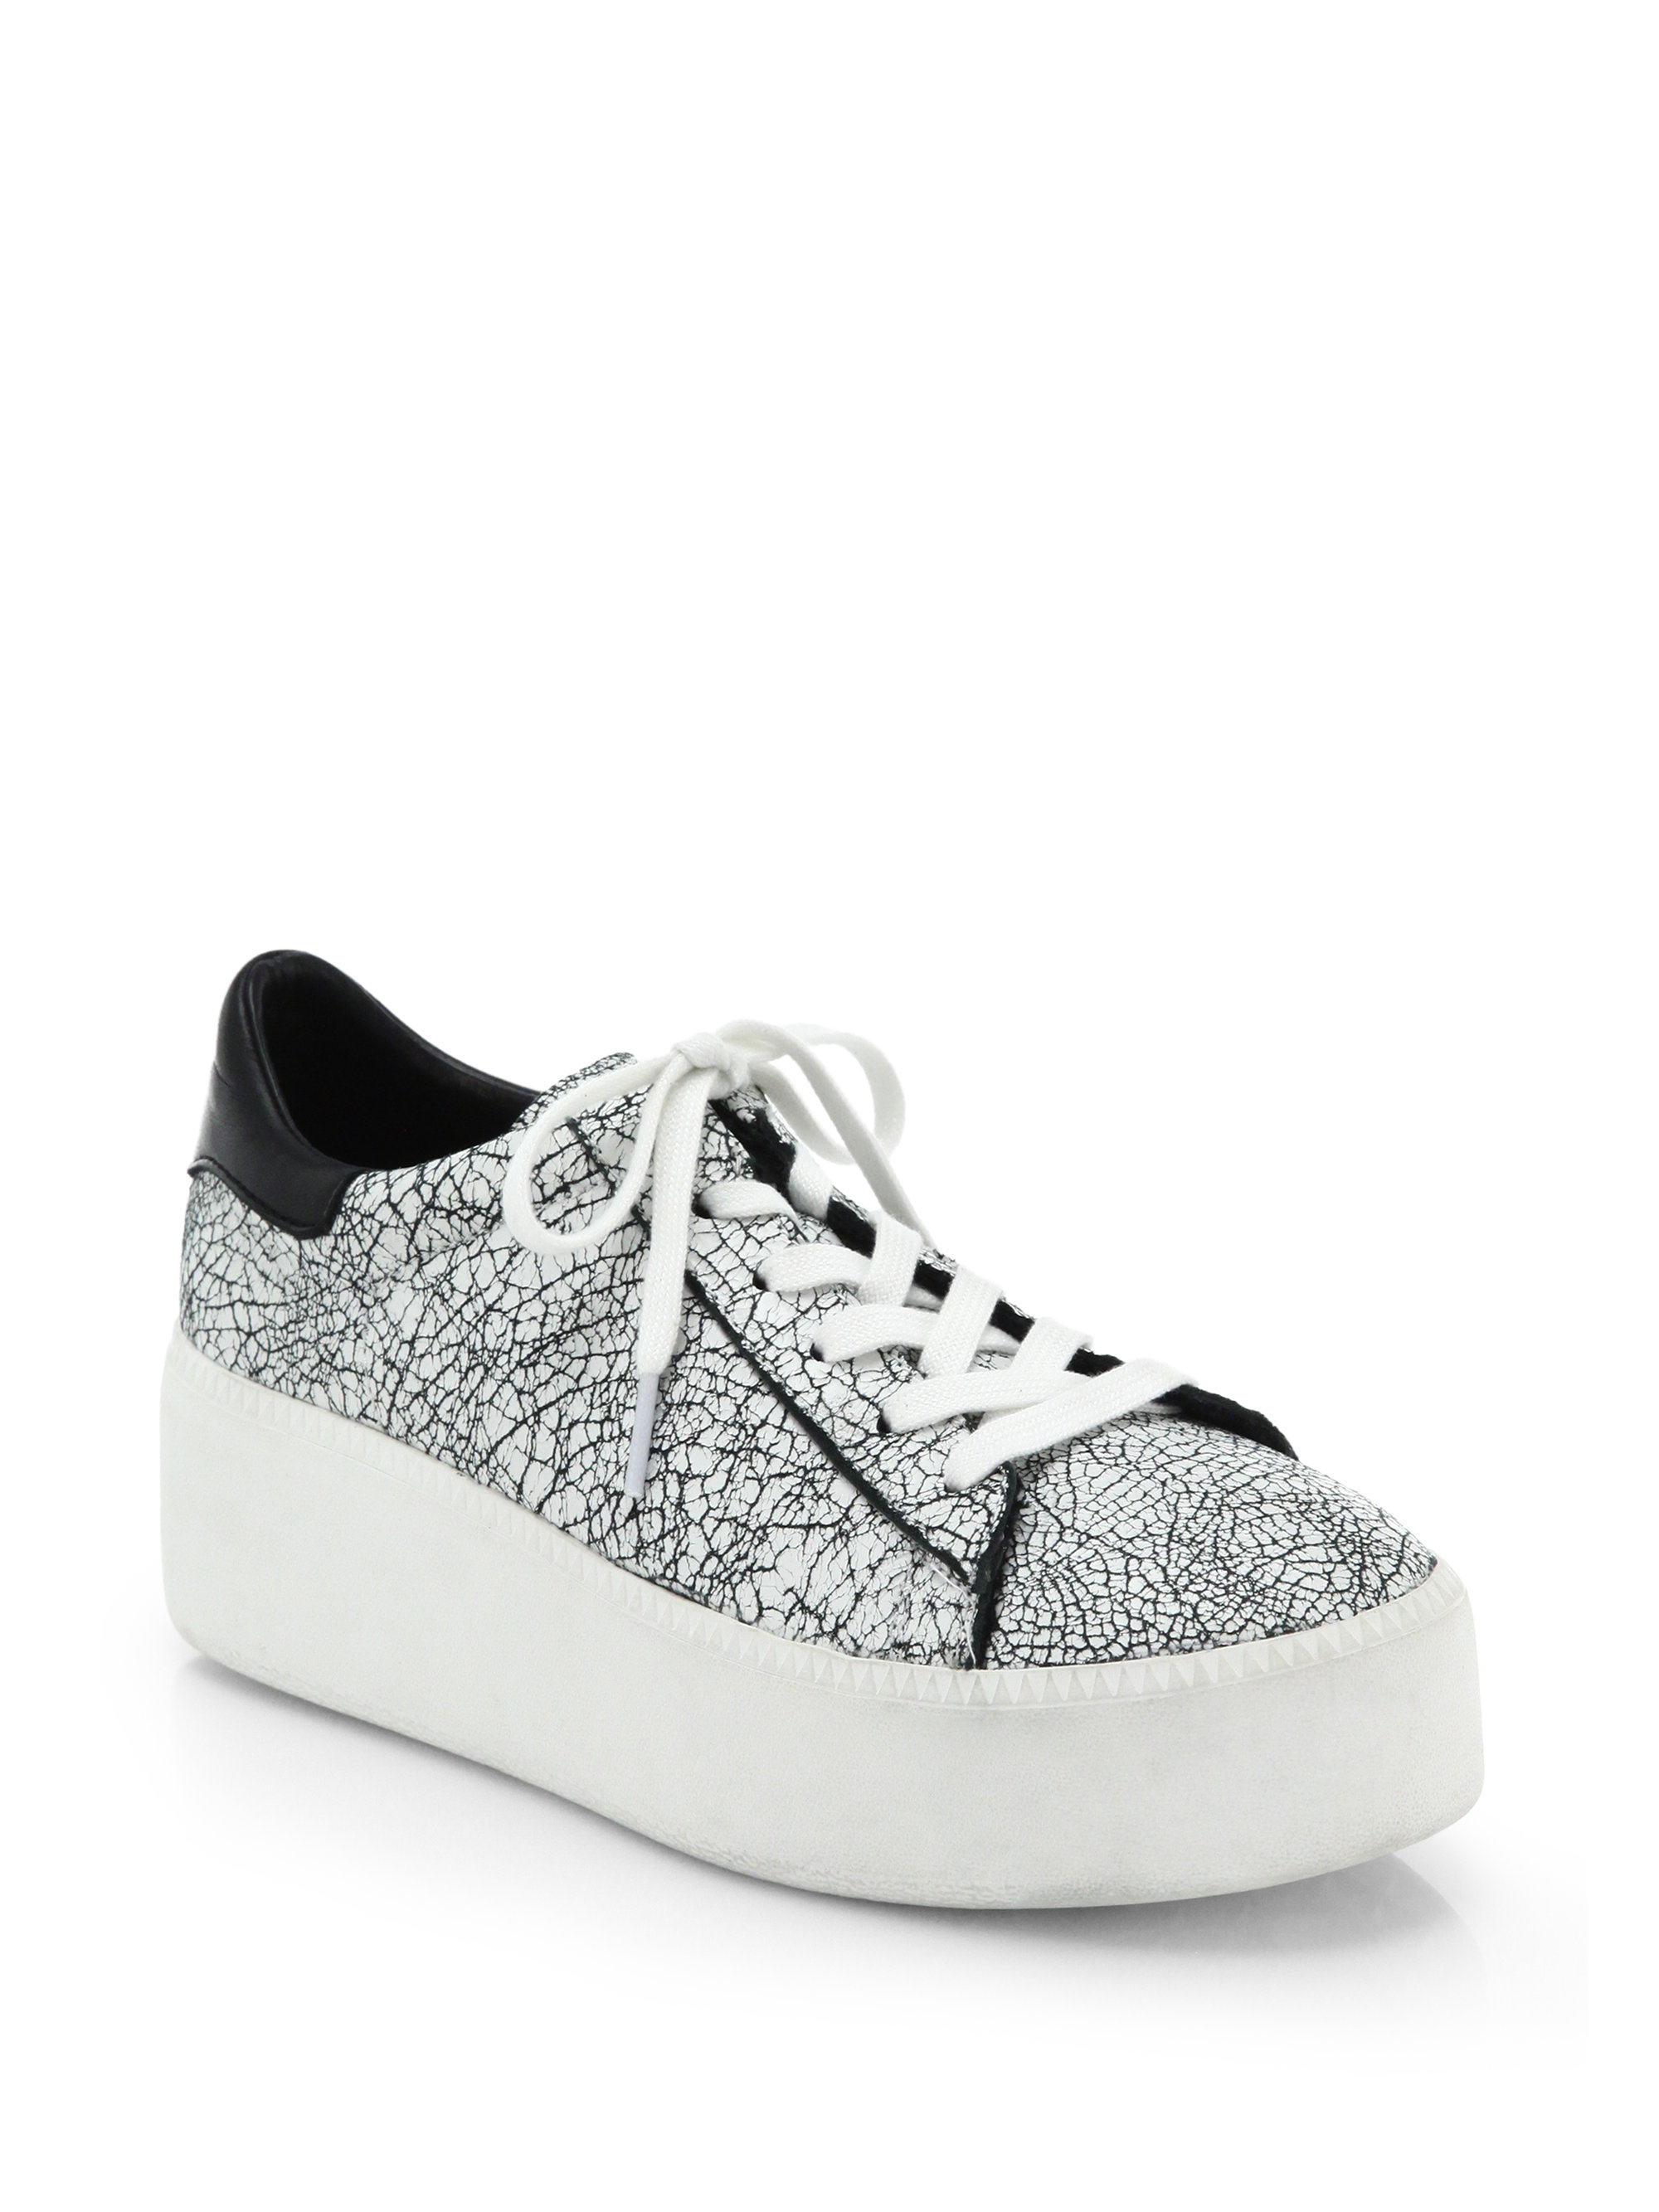 e14b3e915b8b Ash Cult Crackled Leather Platform Sneakers in White